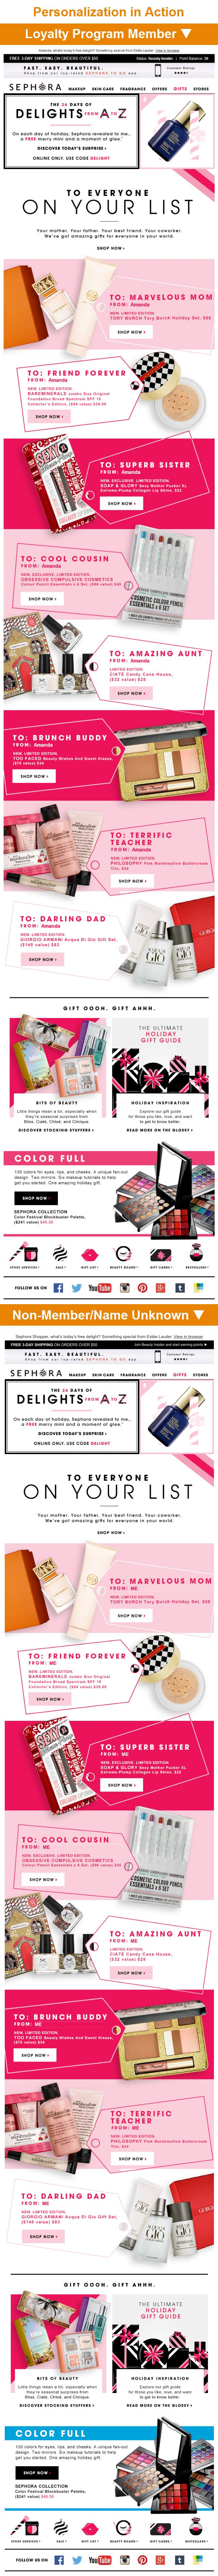 "Sephora >> sent 12/8/14 >> Amaze Them >> This Sephora email cleverly combines gift-recipient personas and first-name personalization by creating gift tags, which have the persona in the ""To"" line and my name in the ""From"" line. The tactic helps the subscriber envision themselves giving the gift. Plus, Sephora wisely uses ""Me"" as the fallback when they don't know the subscriber's name so it doesn't ruin the gift tag setup. —Amanda Miller, Senior Marketing Consultant, Salesforce Marketing…"